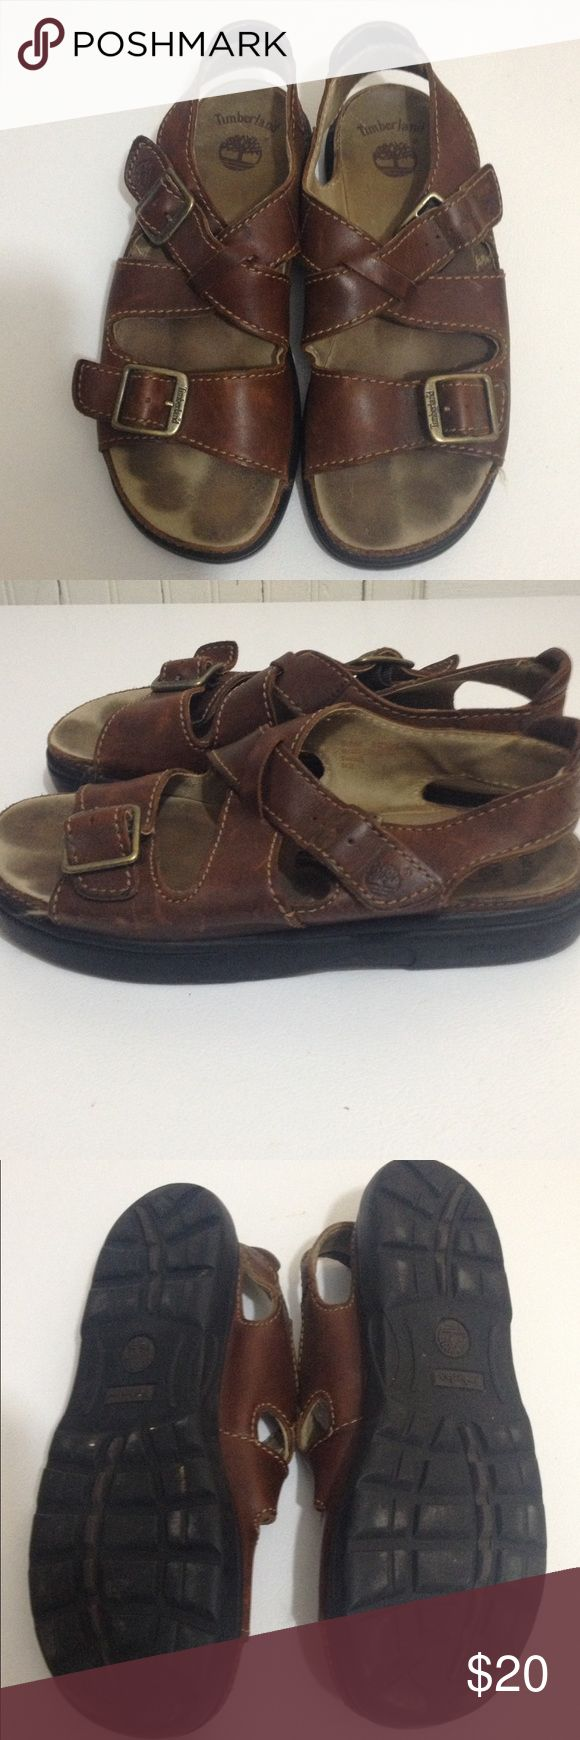 Women's Timberland Sandals Have not been worn much a lot of wear left. Comfortable sandal Timberland Shoes Sandals